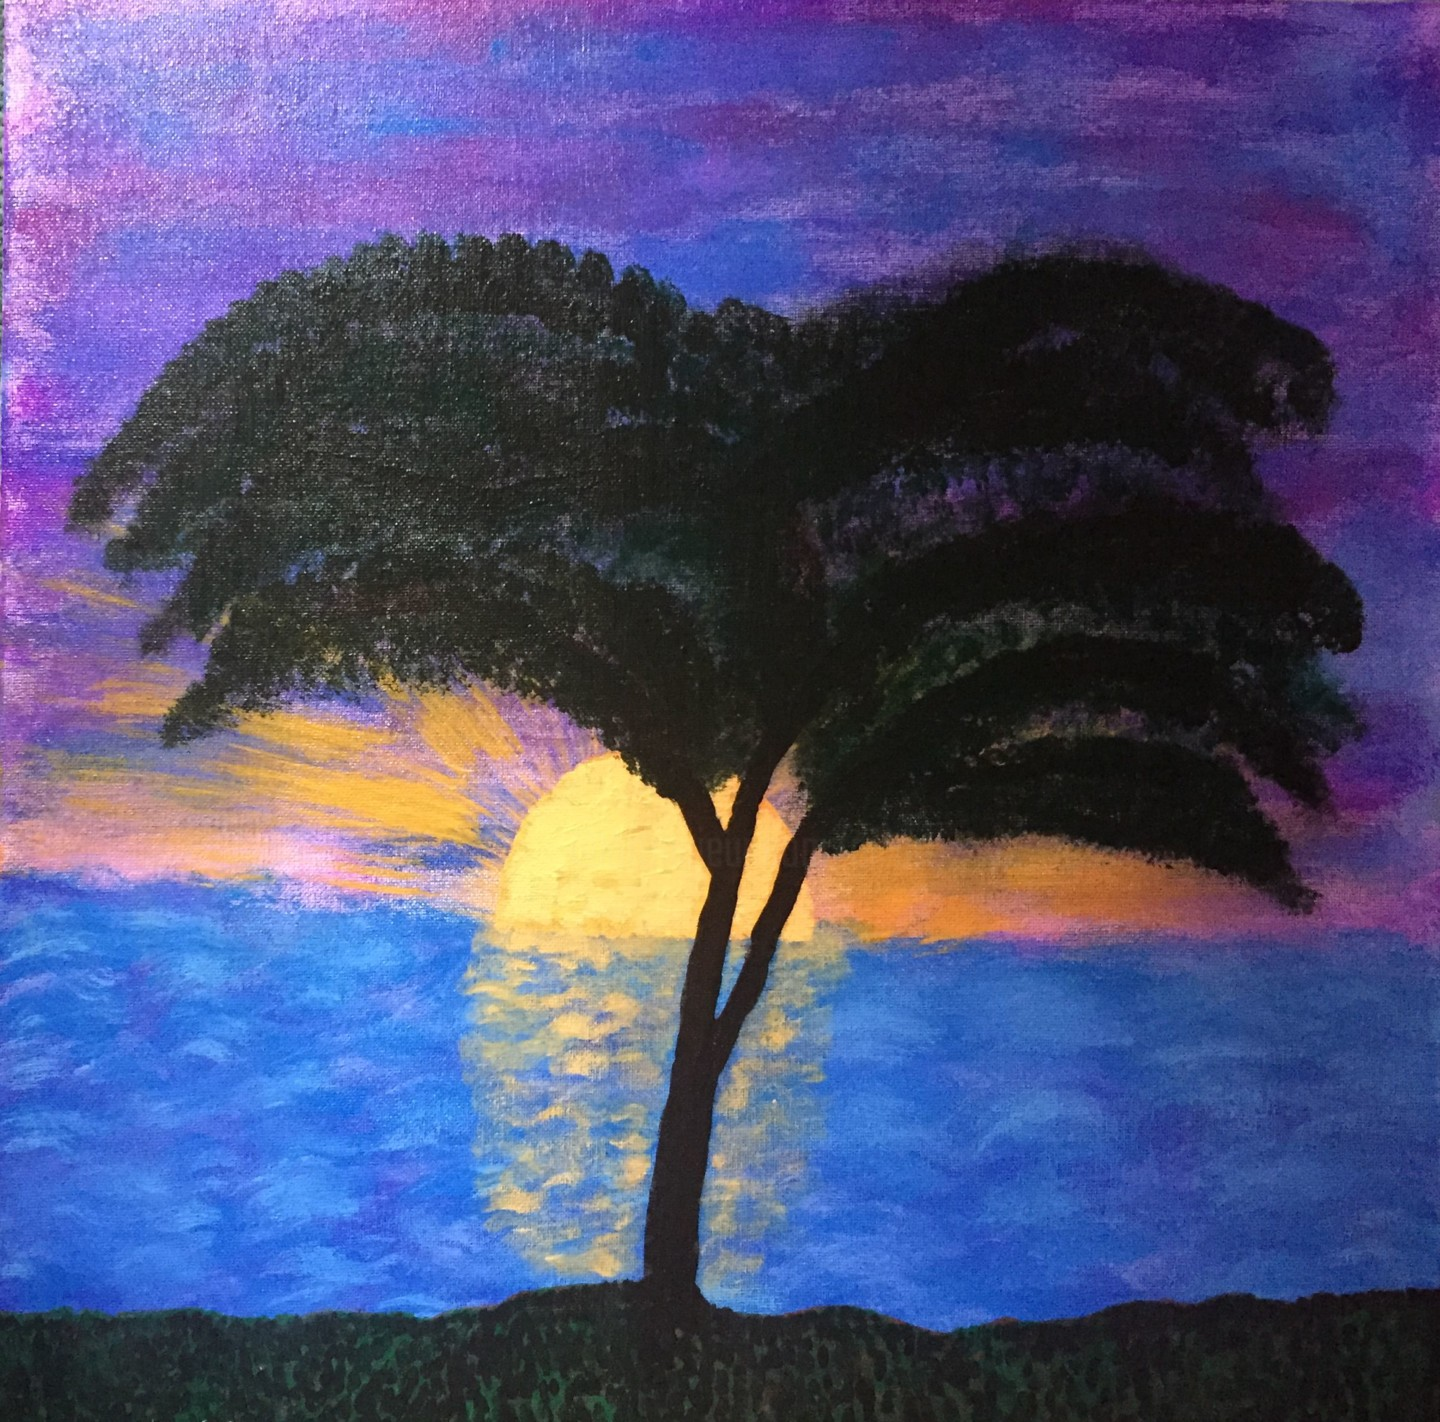 Purple Sunset Painting By Giart Artmajeur